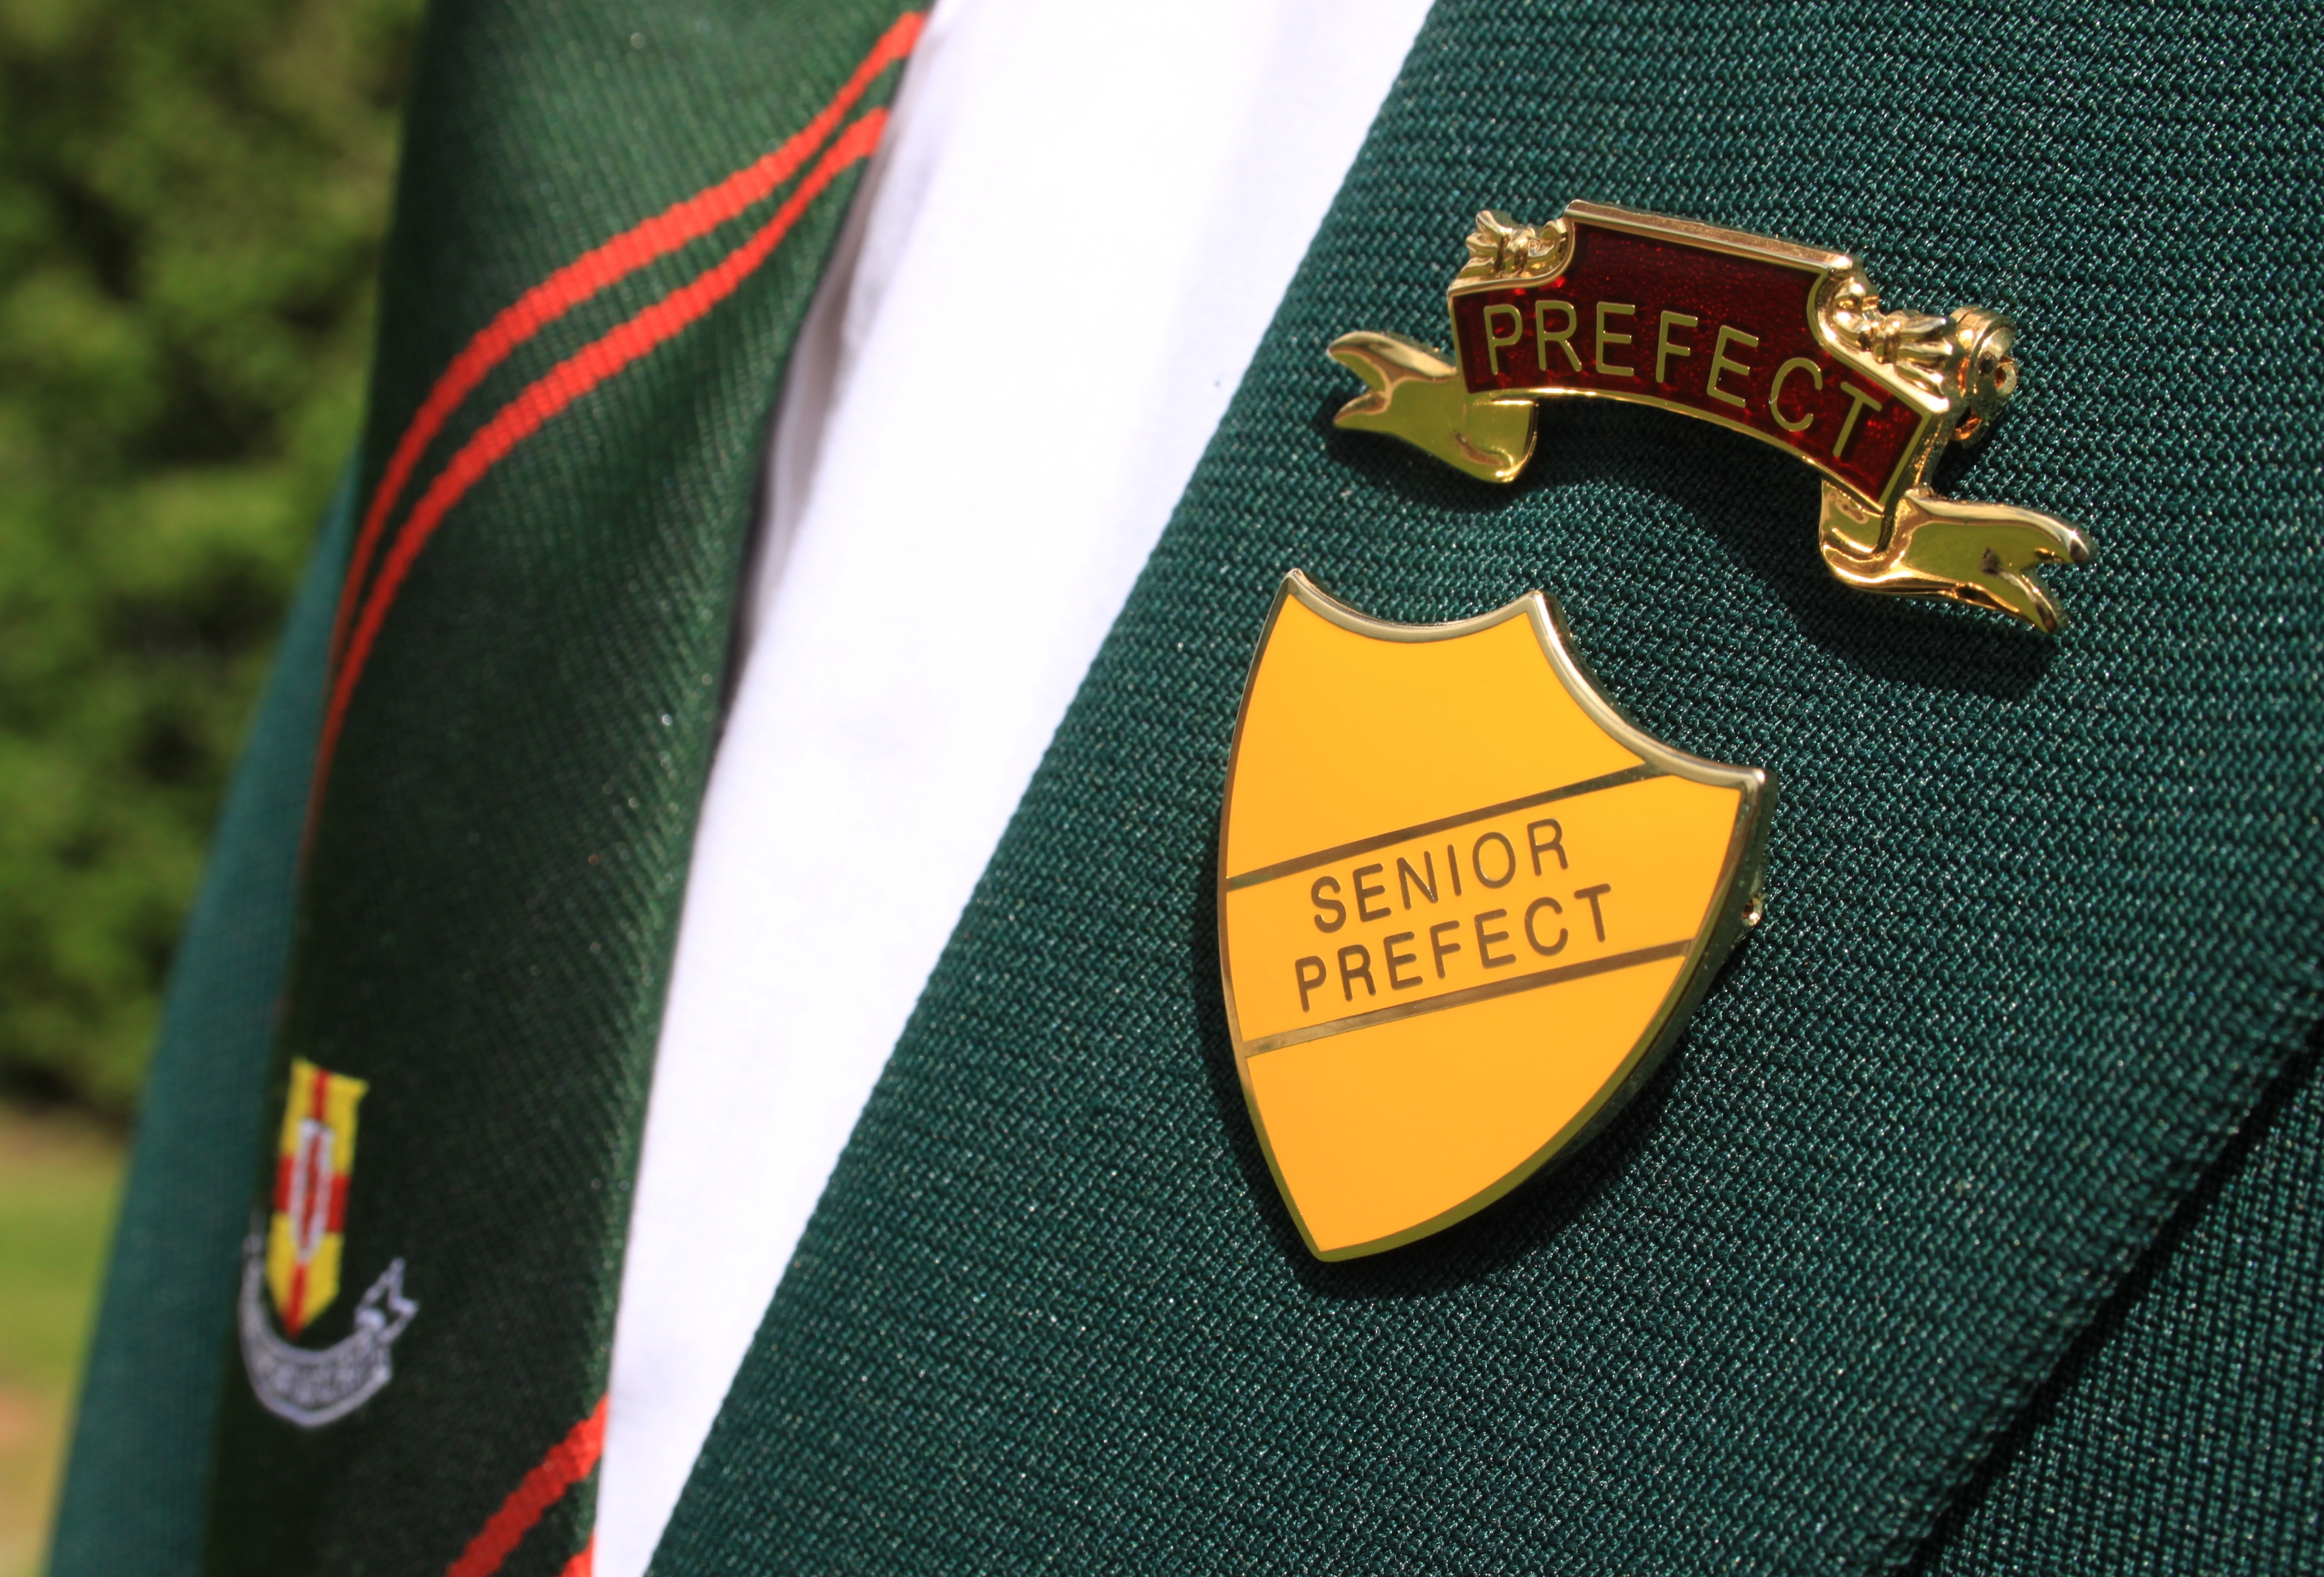 senior prefect badge